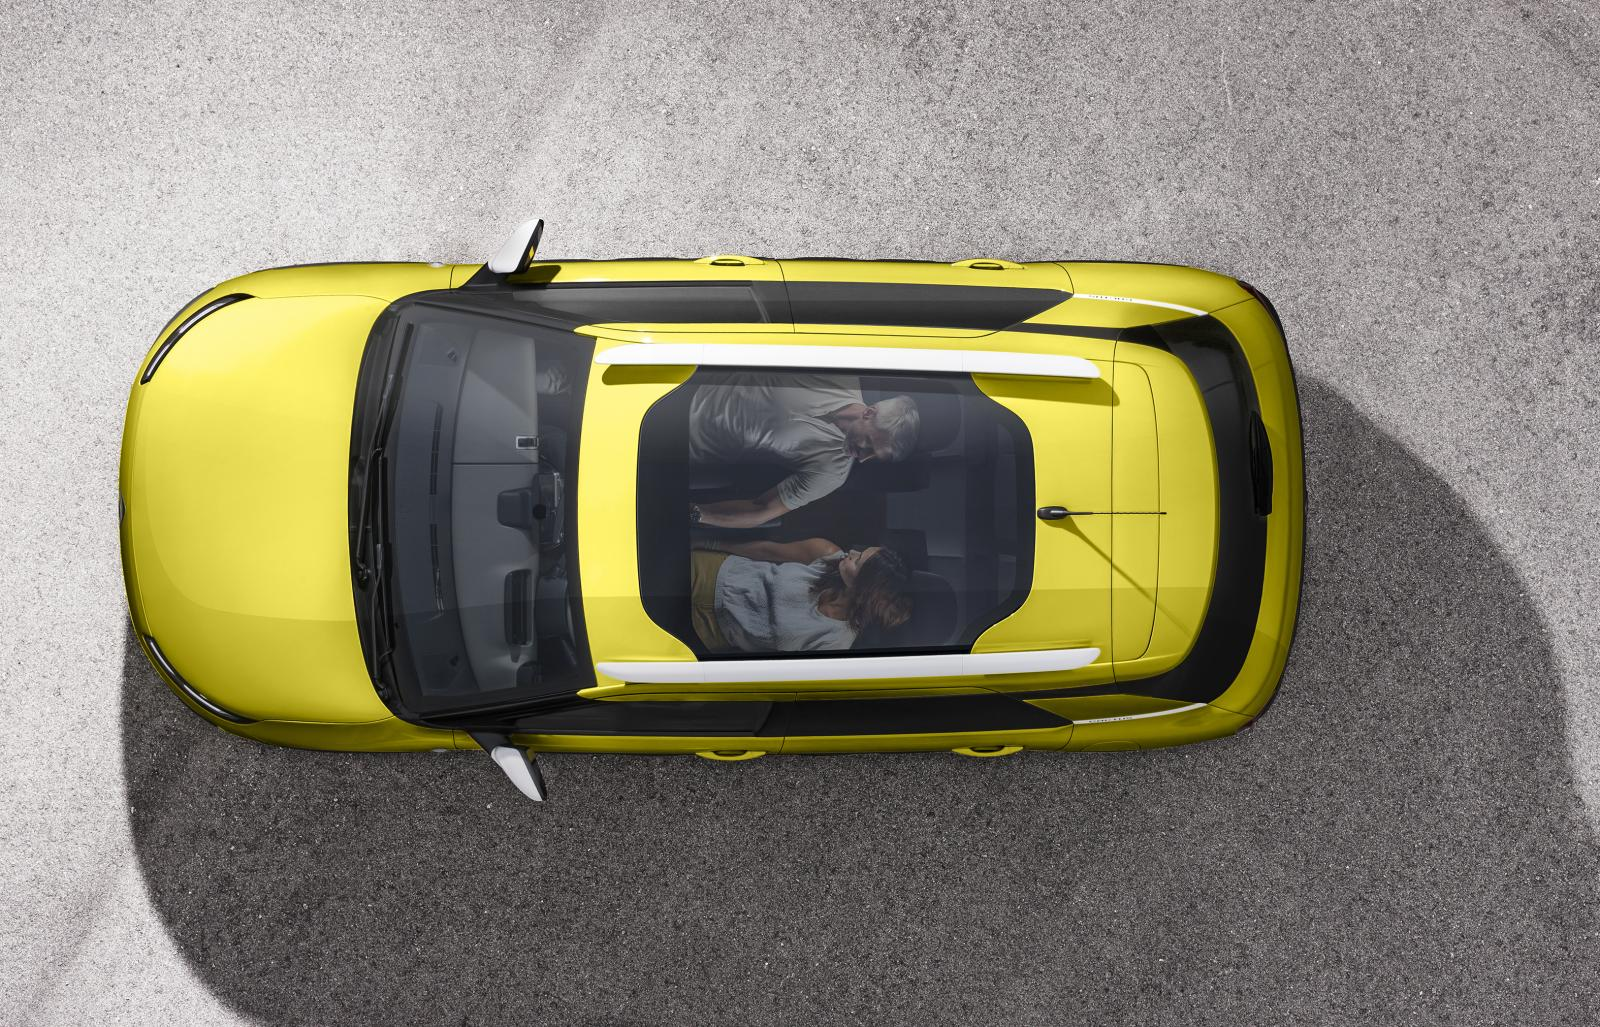 C4 Cactus Shine edition 2014 panorama sunroof